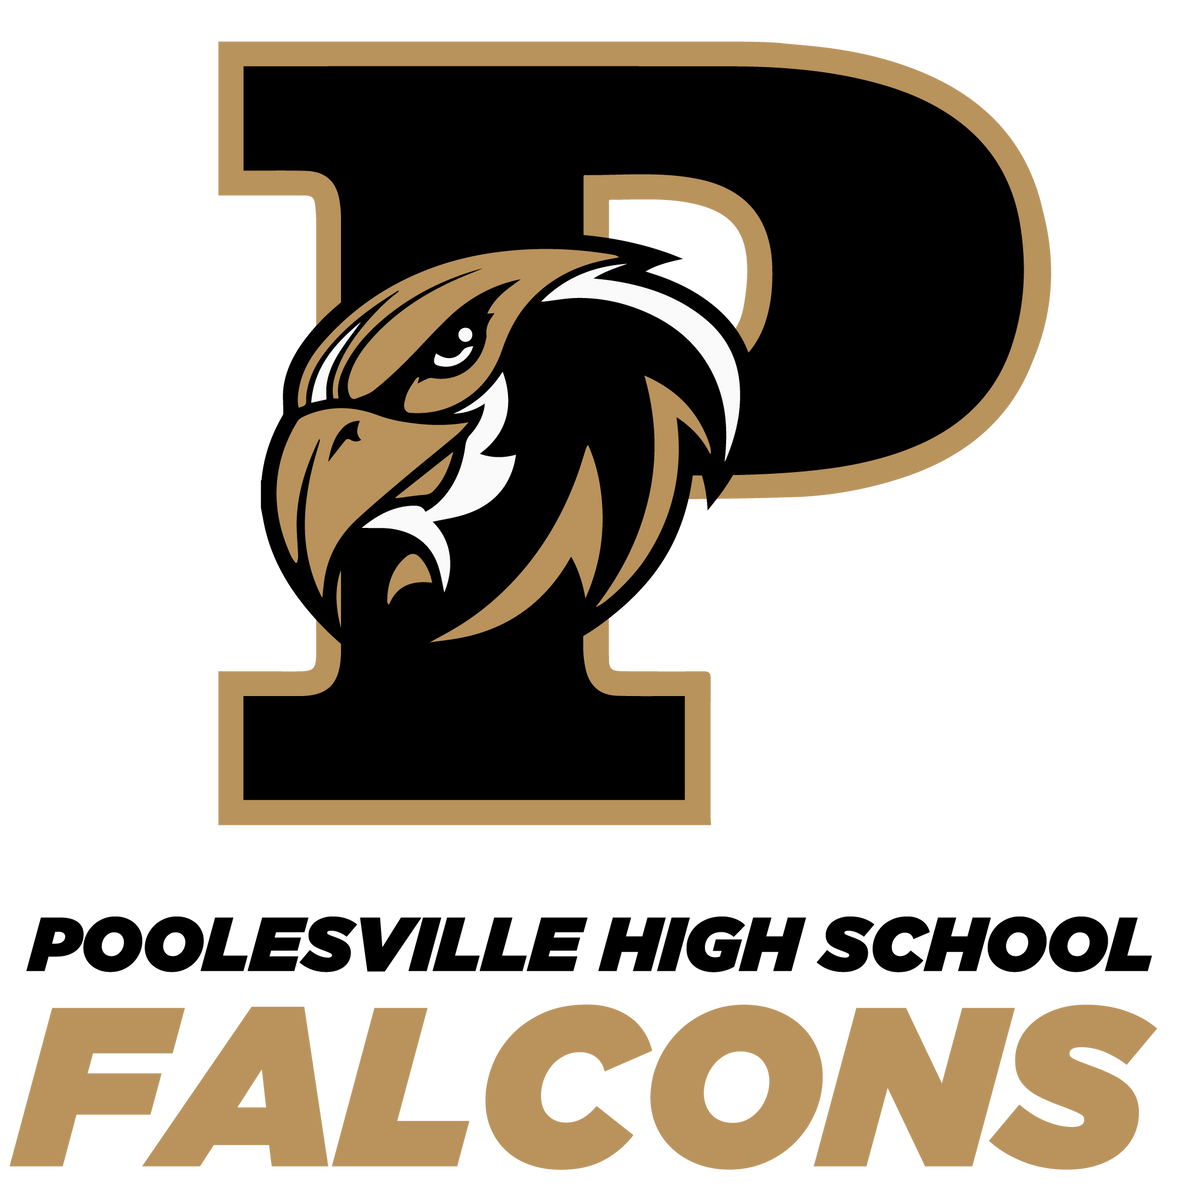 POOLESVILLE FALCONS REPIT subscription